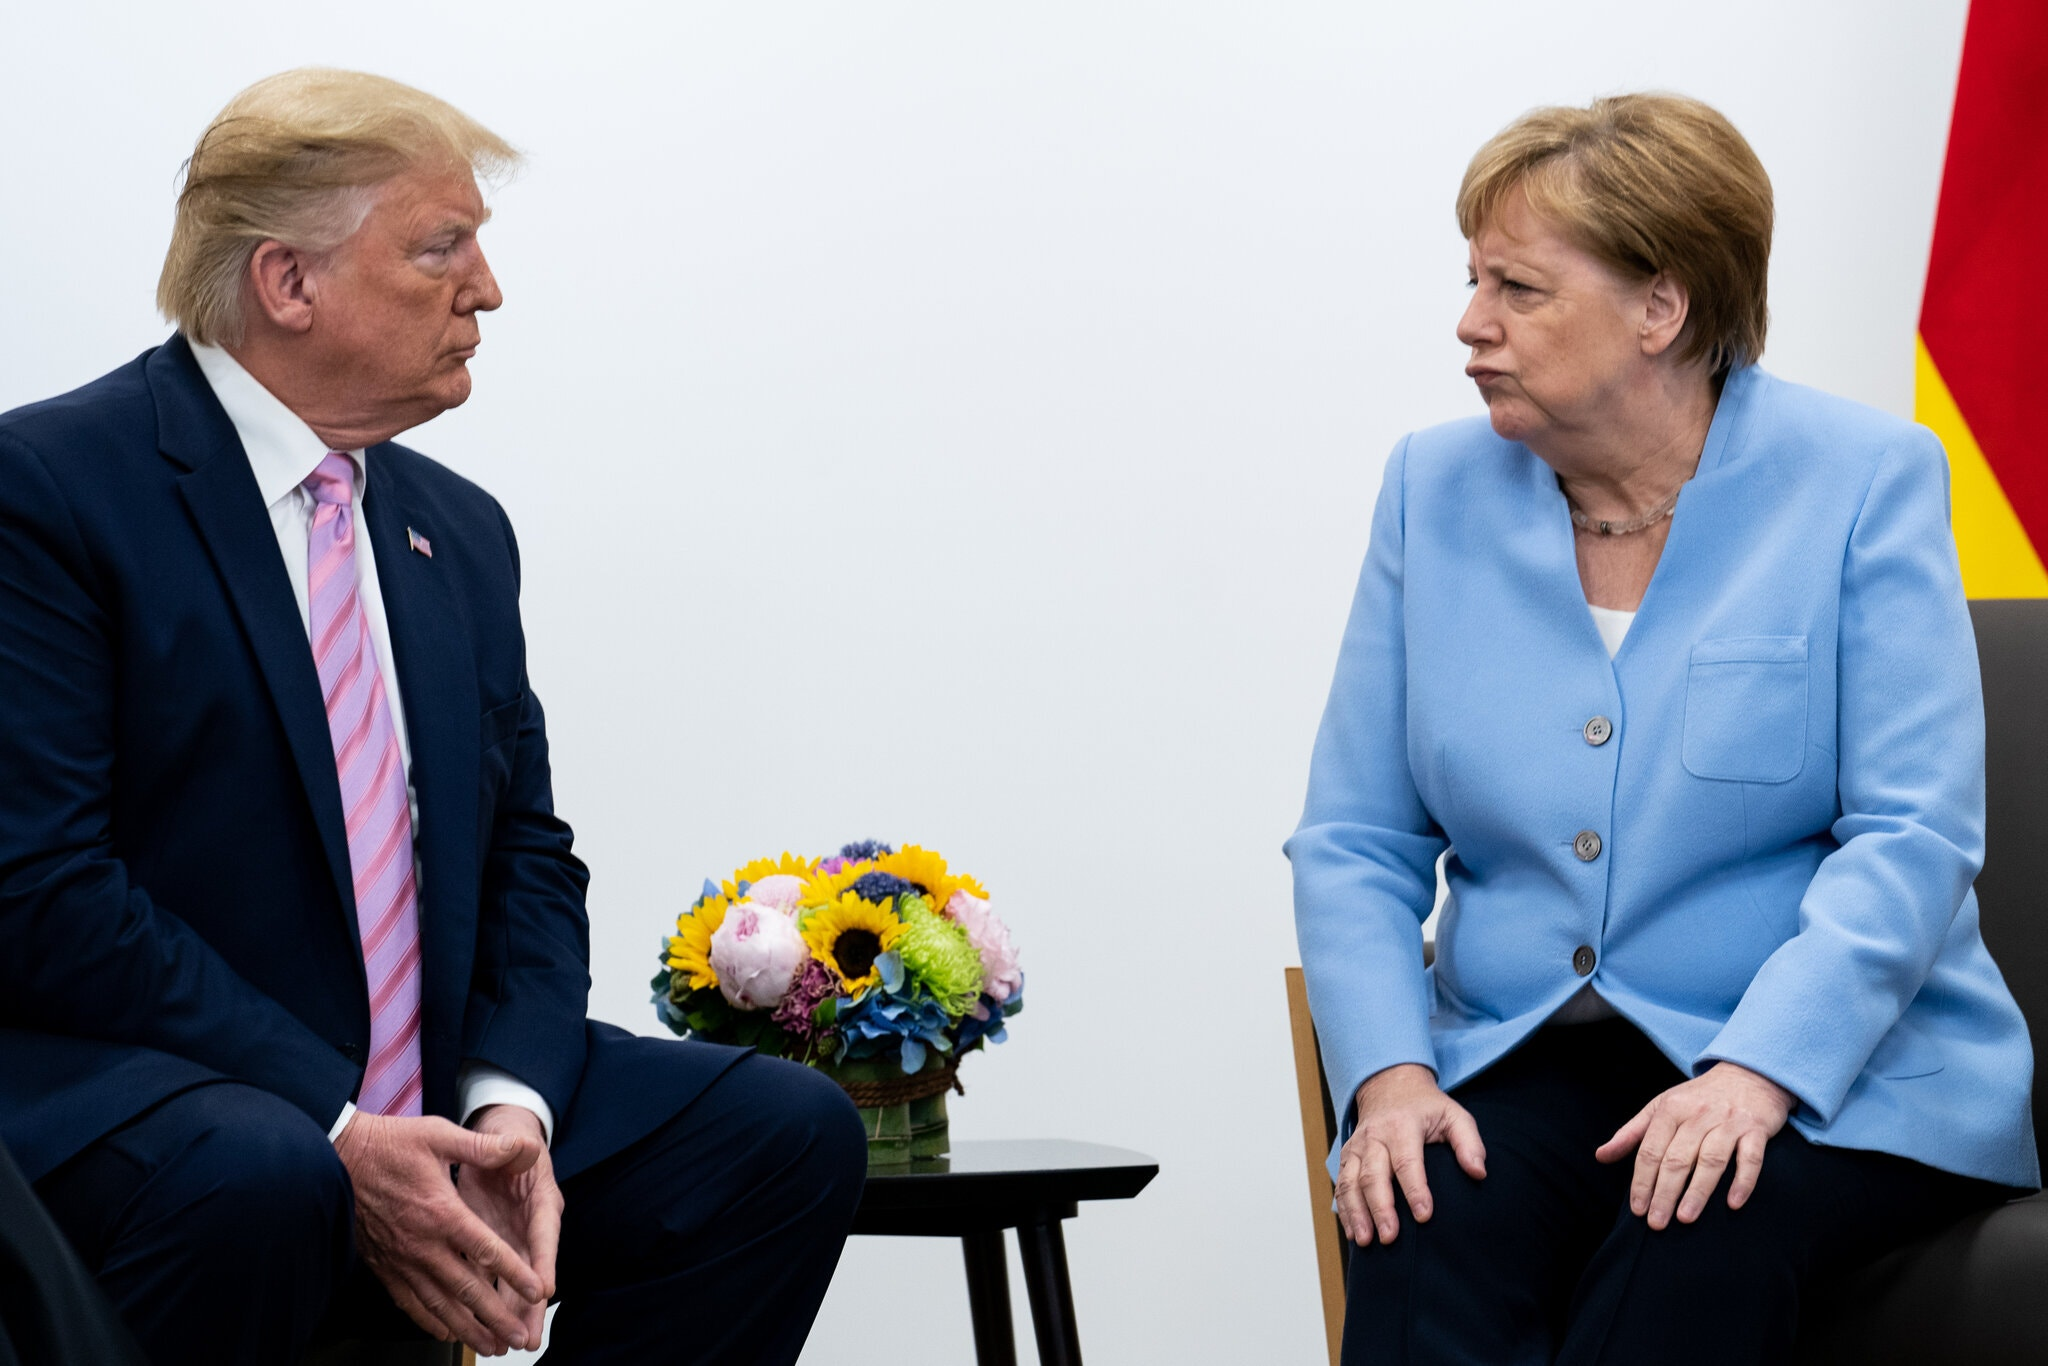 German chancellor Angela Merkel with former US President Donald Trump. President Trump strained relations between the US and Germany throughout his presidency (The New York Times/ Erin Schaff)